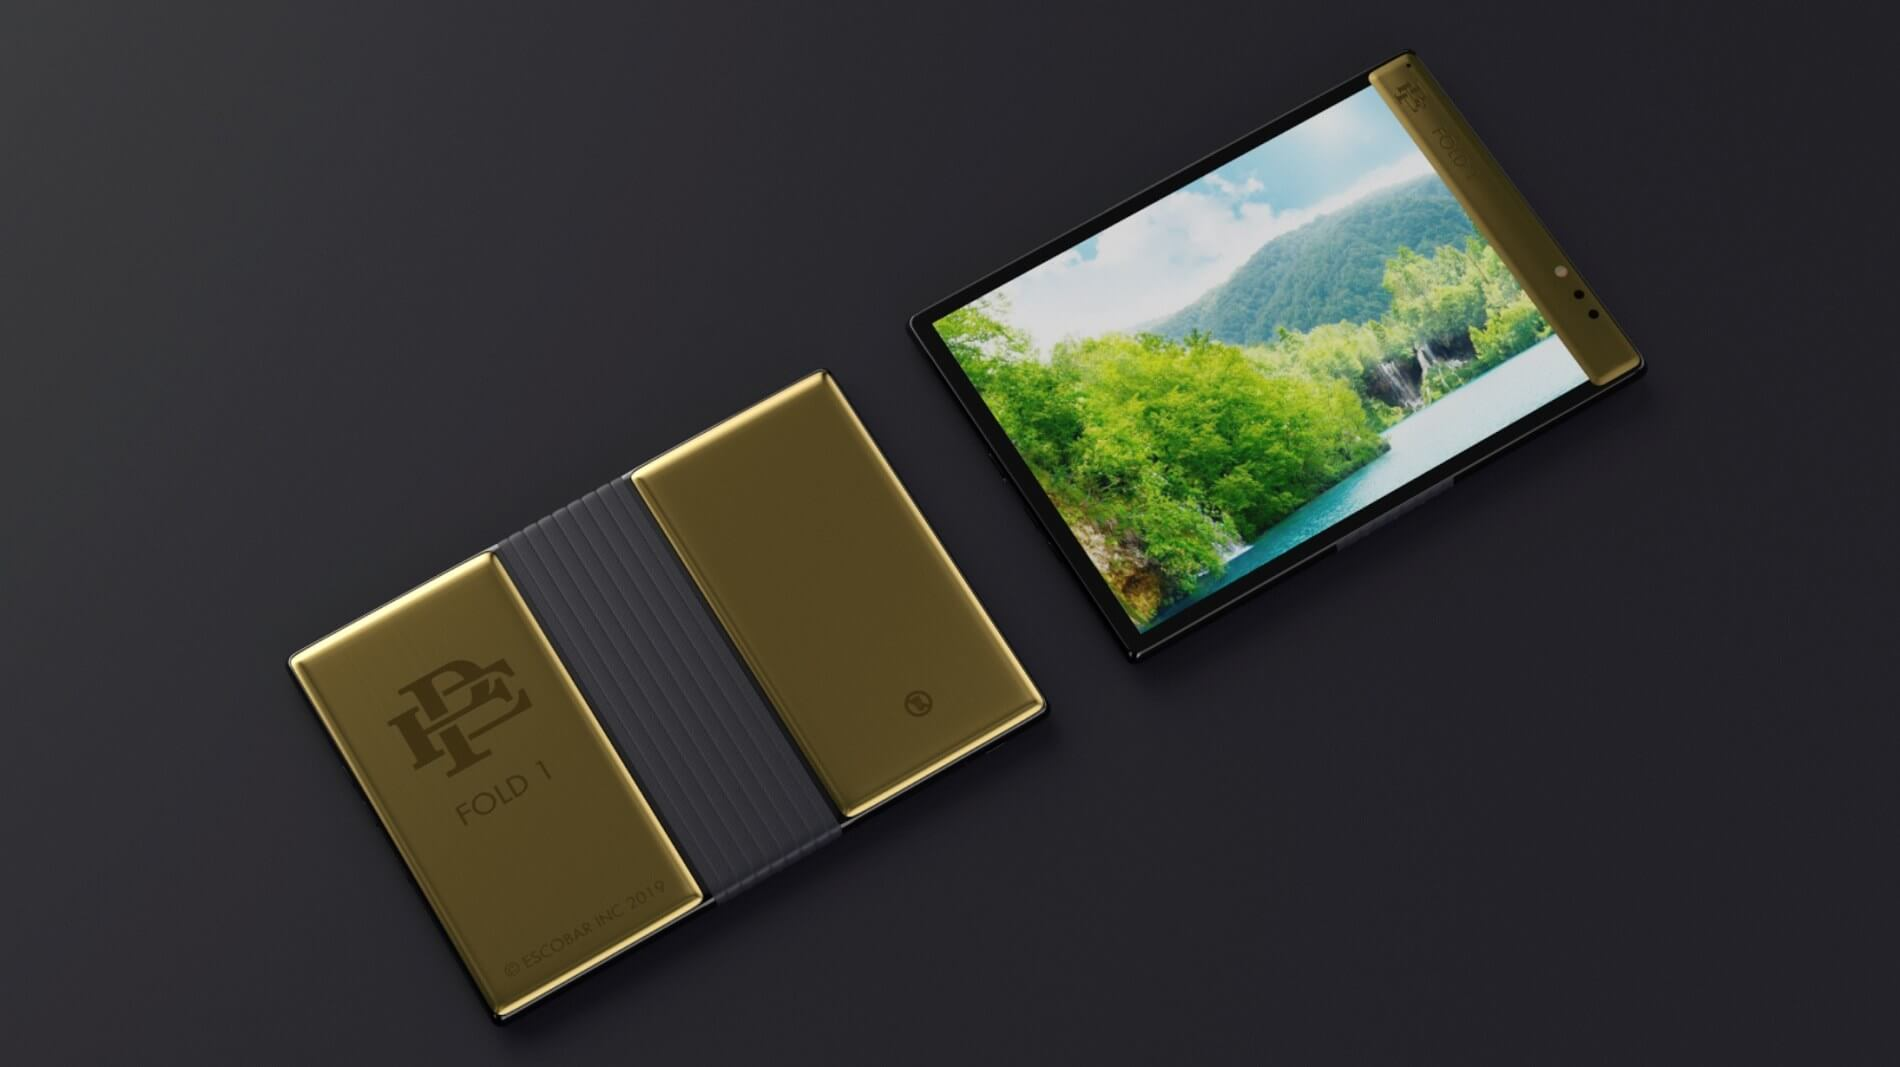 Pablo Escobar's Brother Just Launched A Folding Phone To